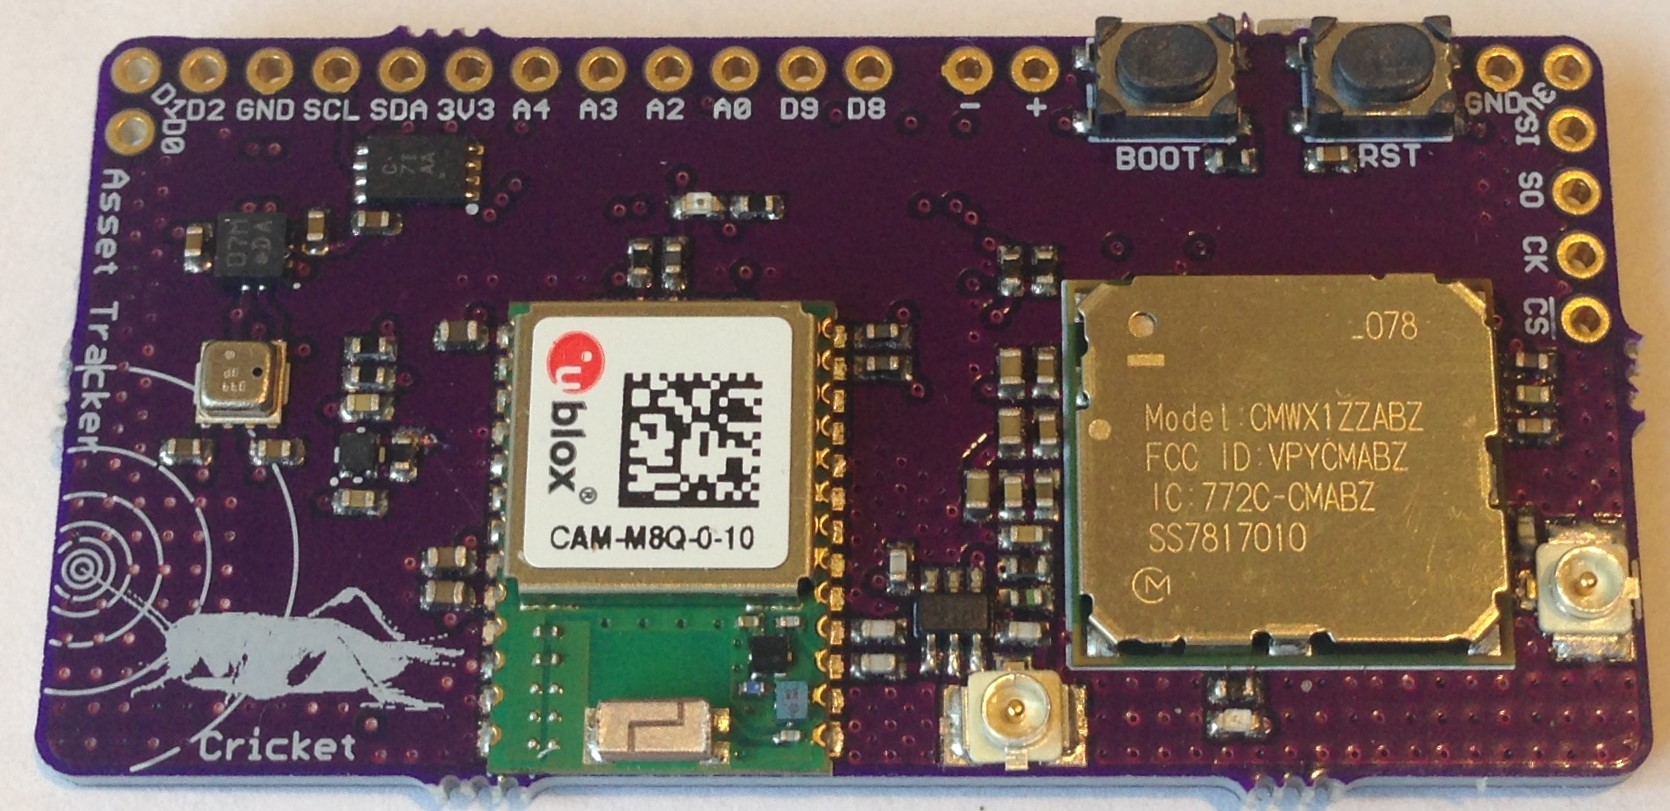 Arduino core for CMWX1ZZABZ-078-based LoRaWAN devices - End